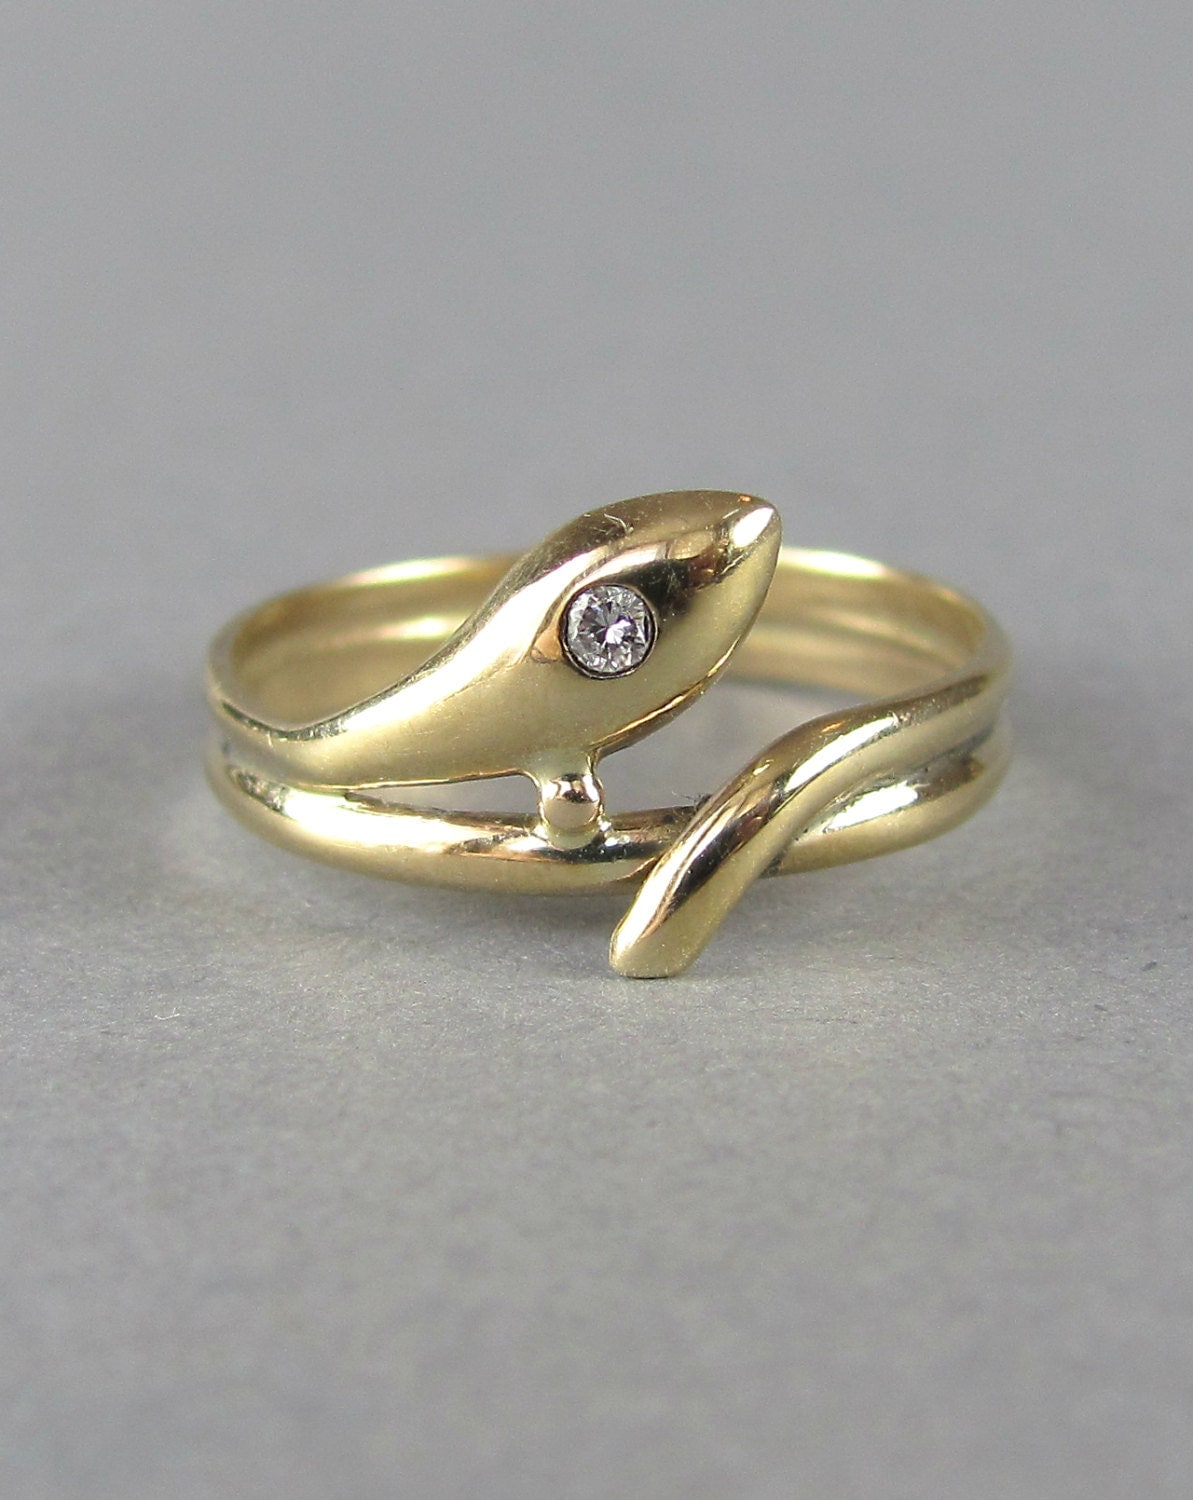 gold and snake ring vintage wedding ring by